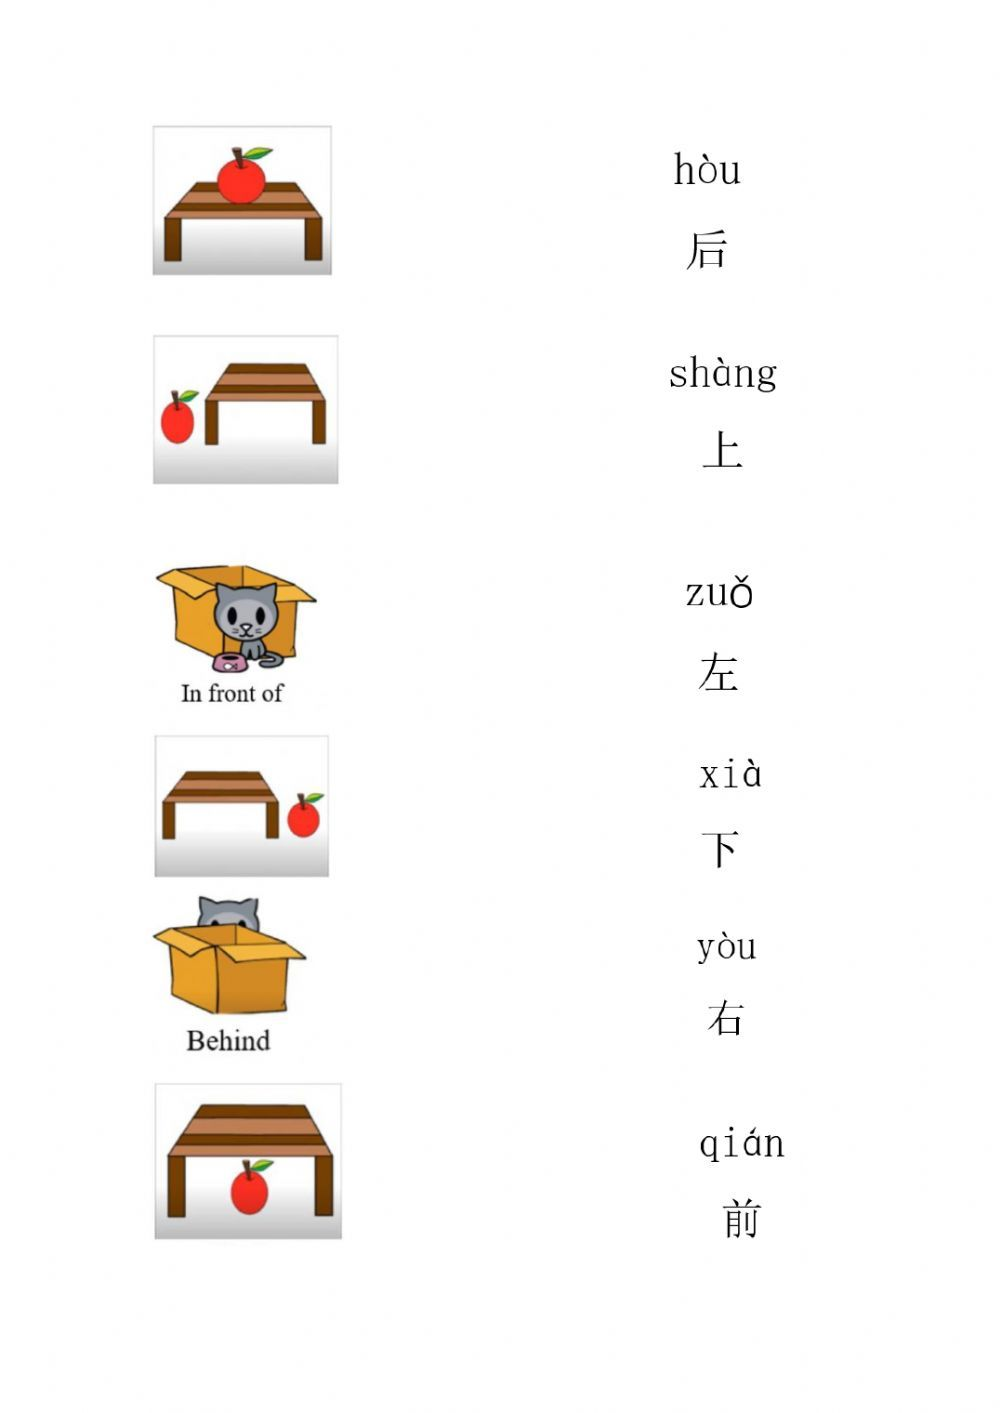 Prepositions Online Worksheet For Elementary You Can Do The Exercises Online Or Download The Worksheet As Pdf Your Teacher Prepositions Workbook [ 1413 x 1000 Pixel ]